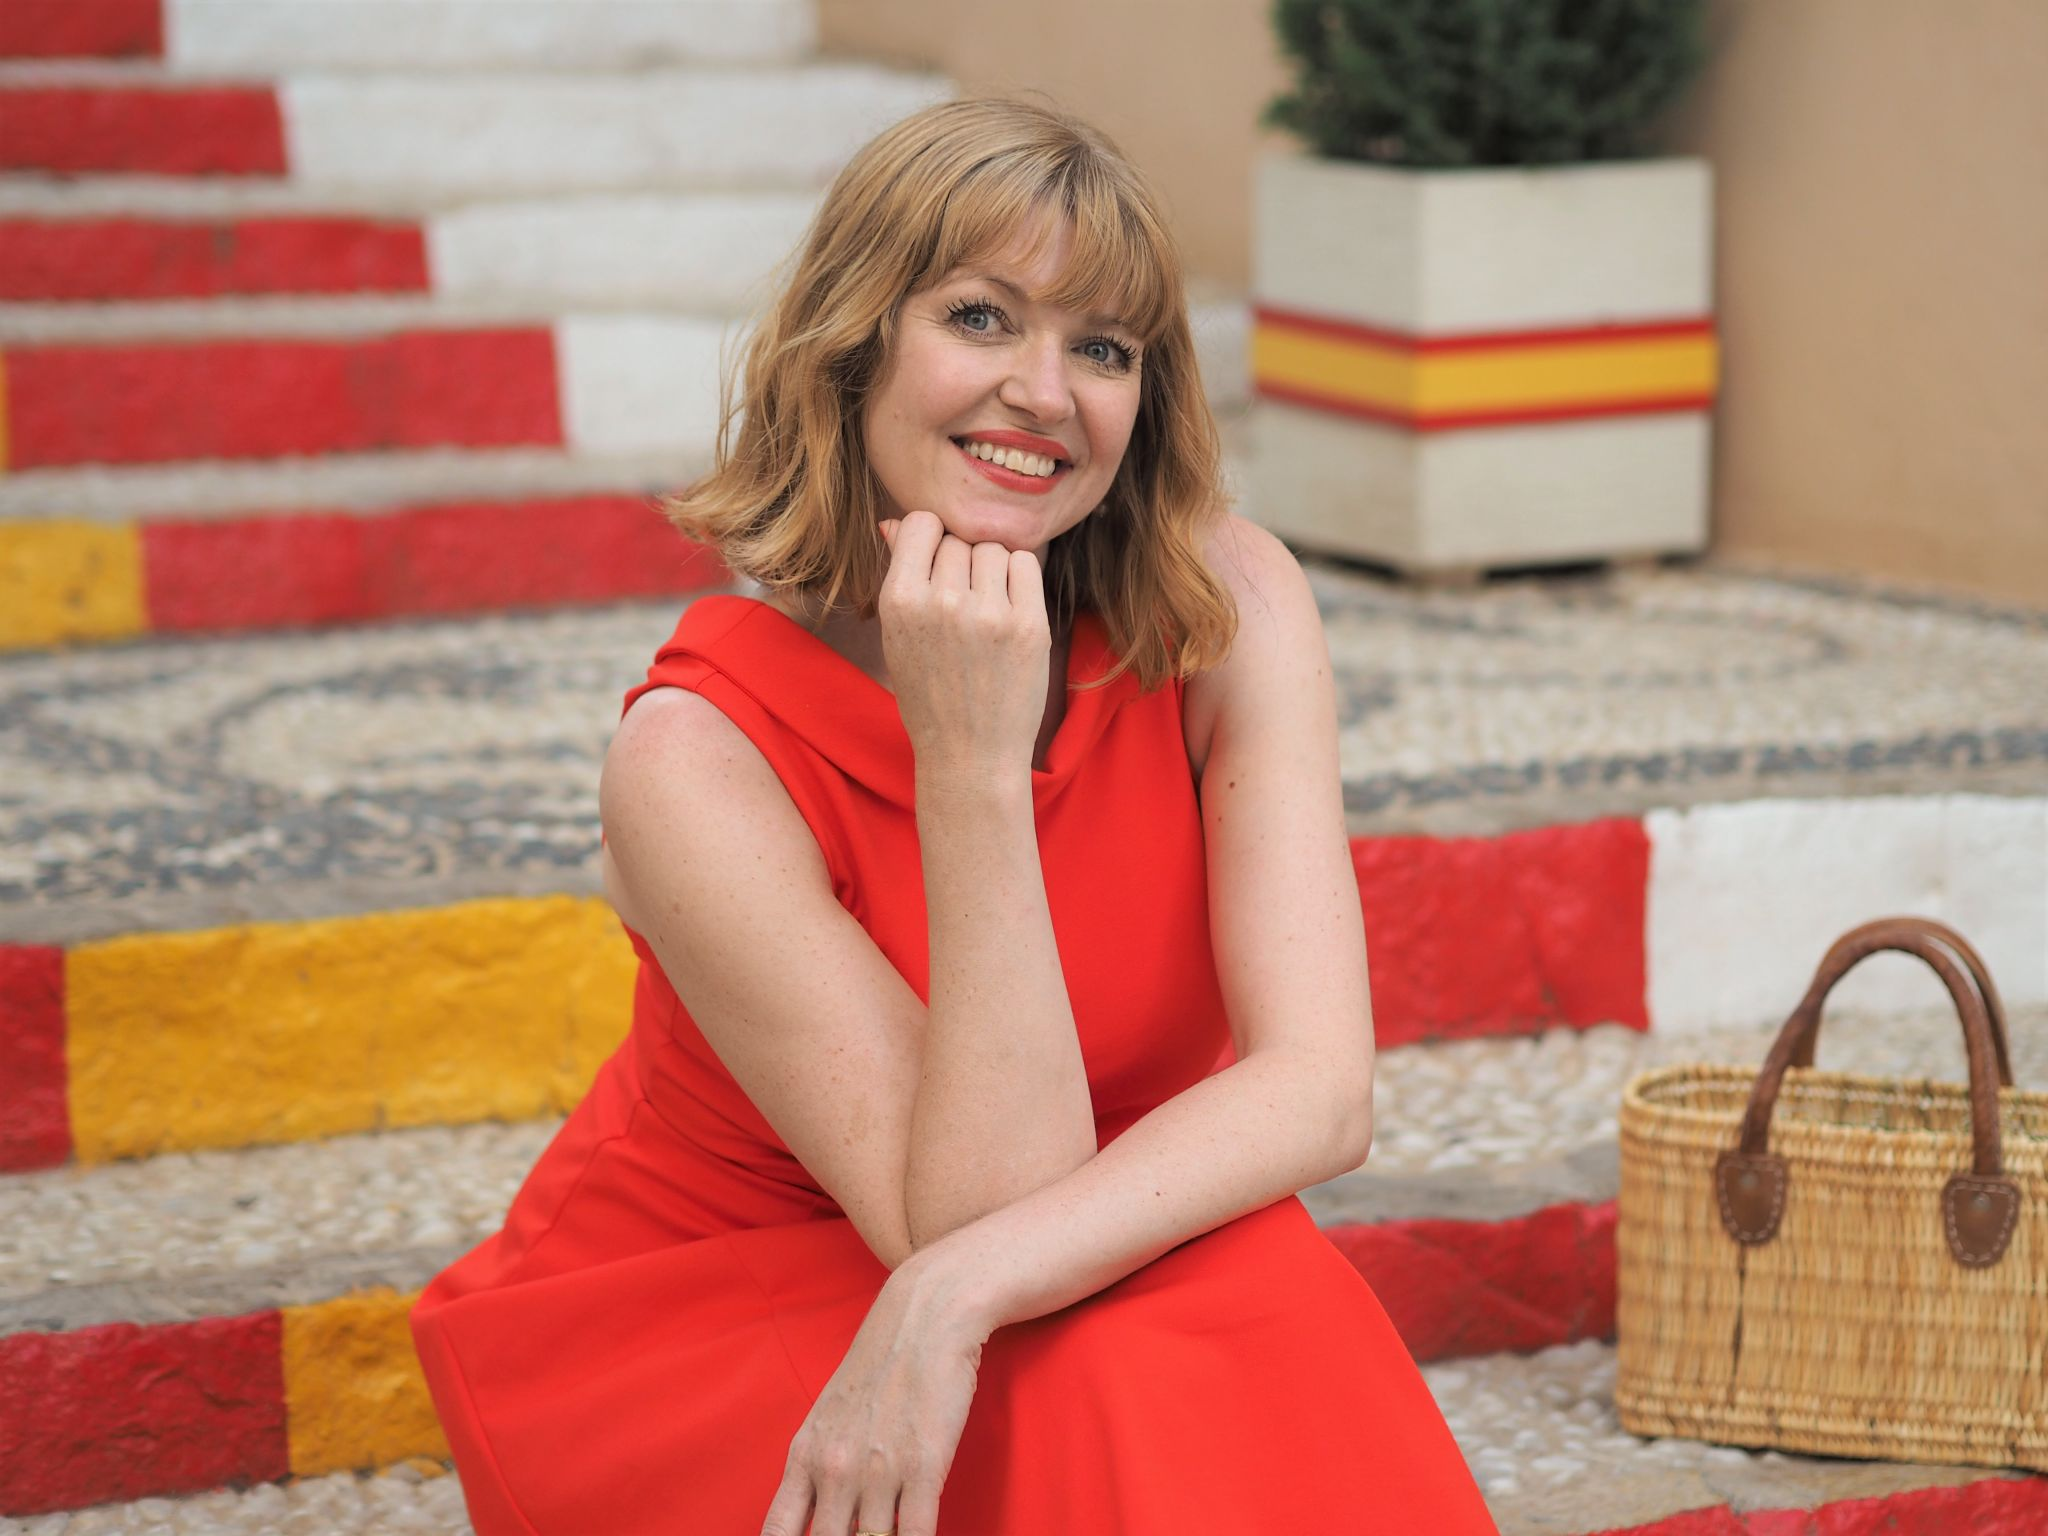 Red Boden Aria dress on yellow and red painted steps at Calpe